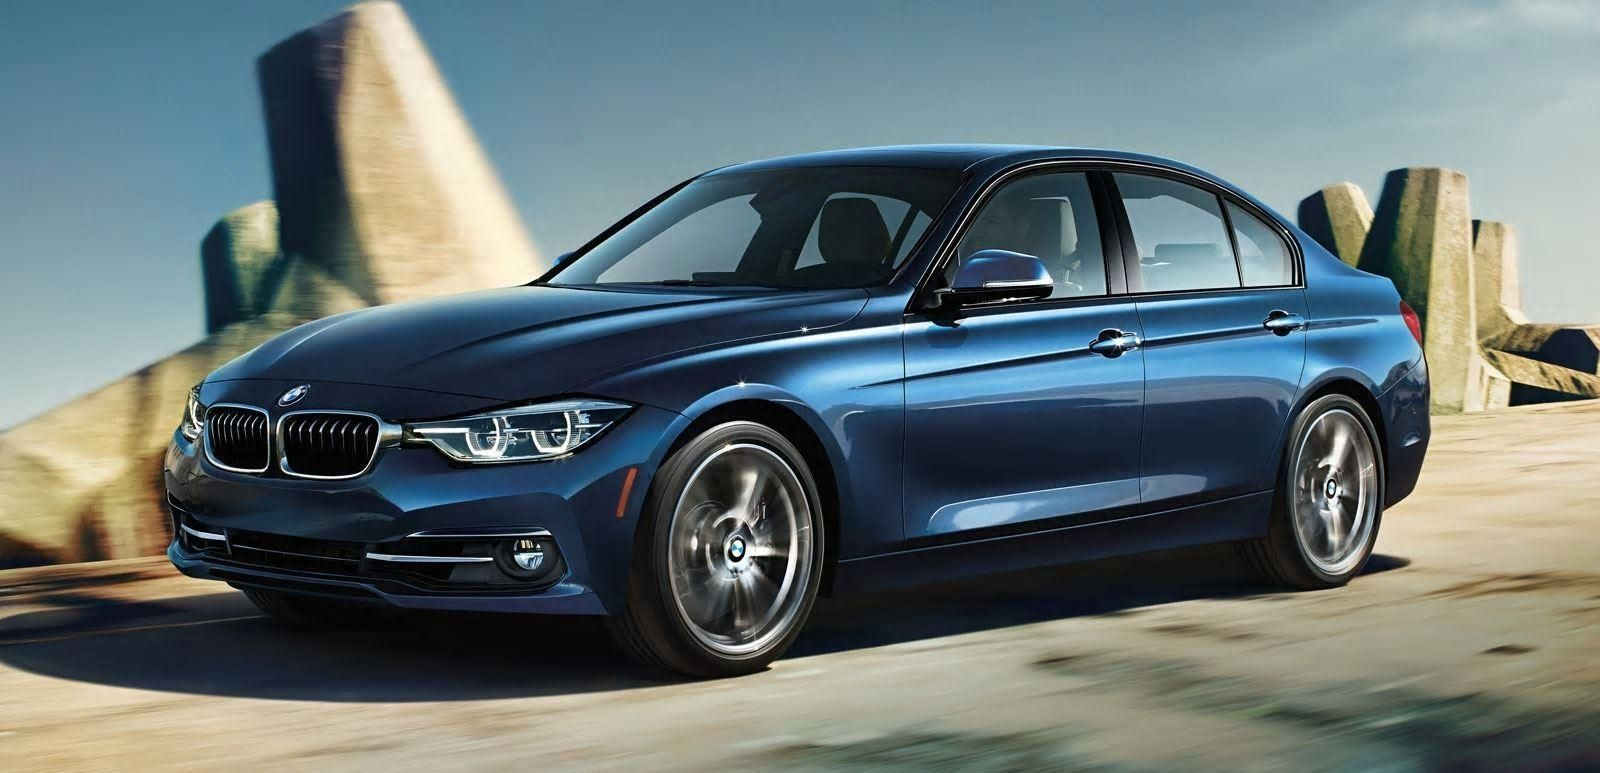 2018 Bmw 3 Series News And Information